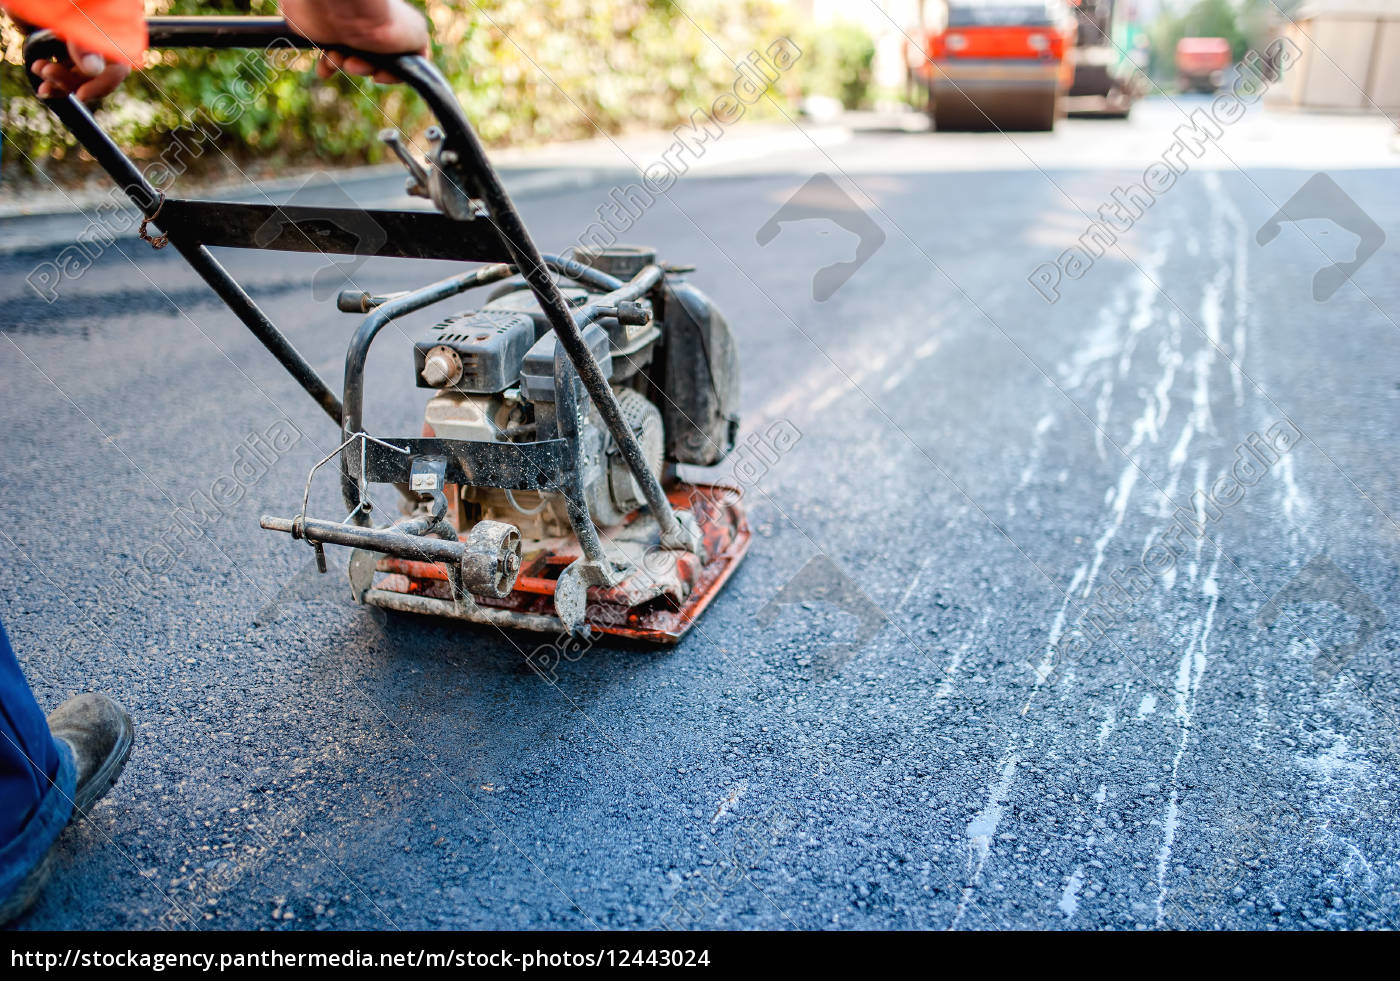 Royalty free photo 12443024 - road construction with worker paving the  fresh bitumen or